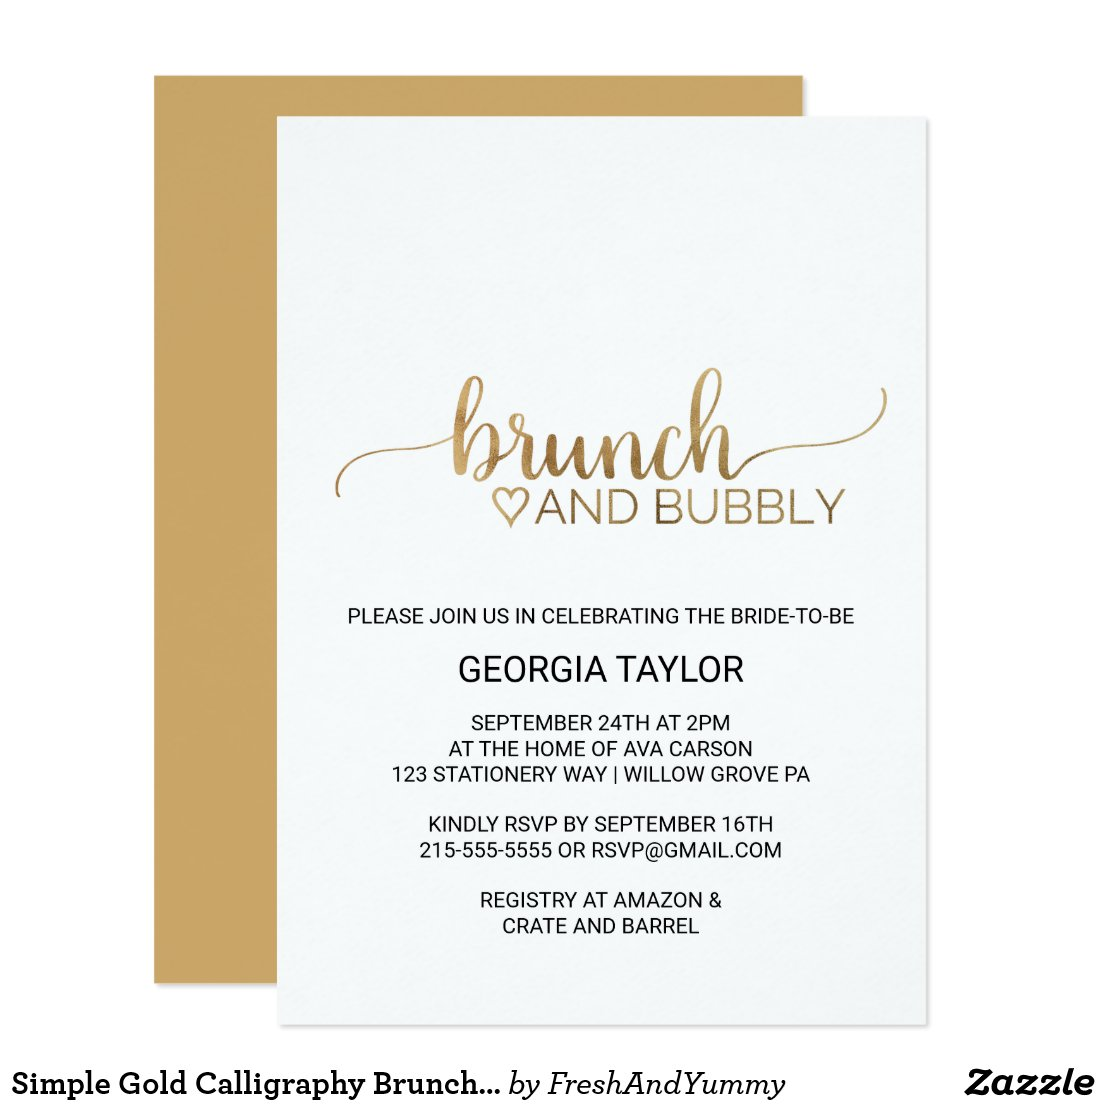 Simple Elegant Gold Calligraphy Brunch and Bubbly Card